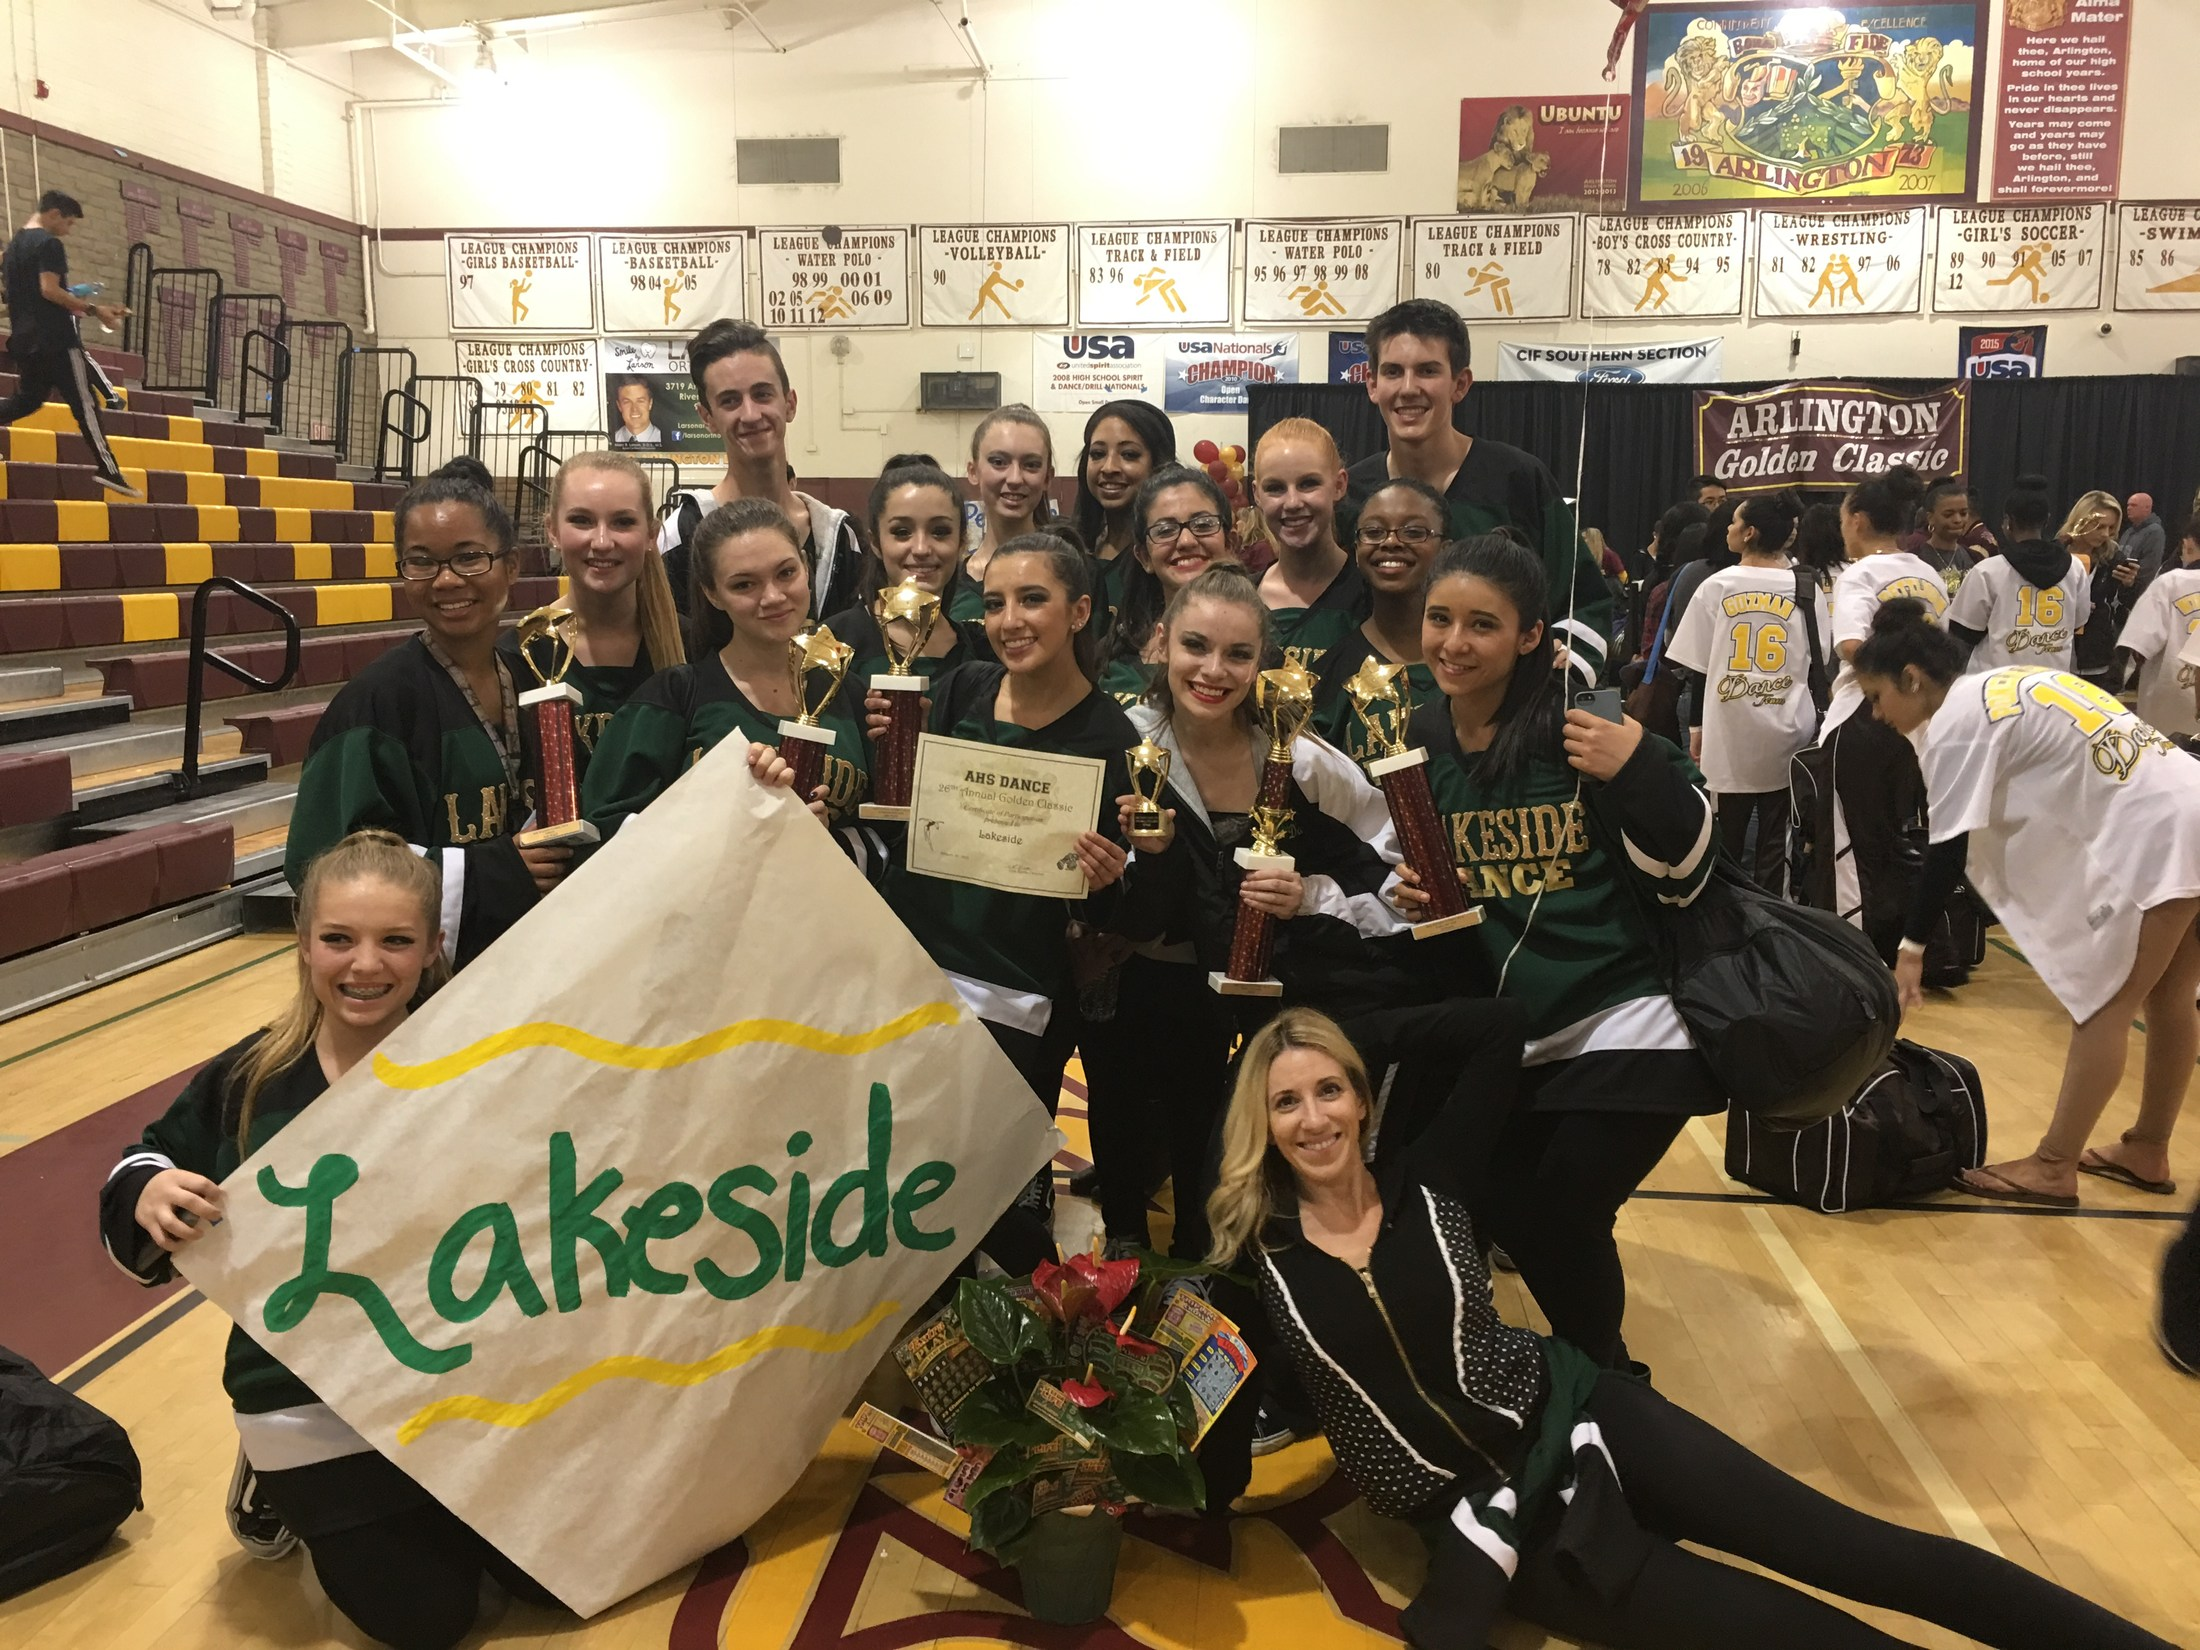 Dance Team with Trophies 2016